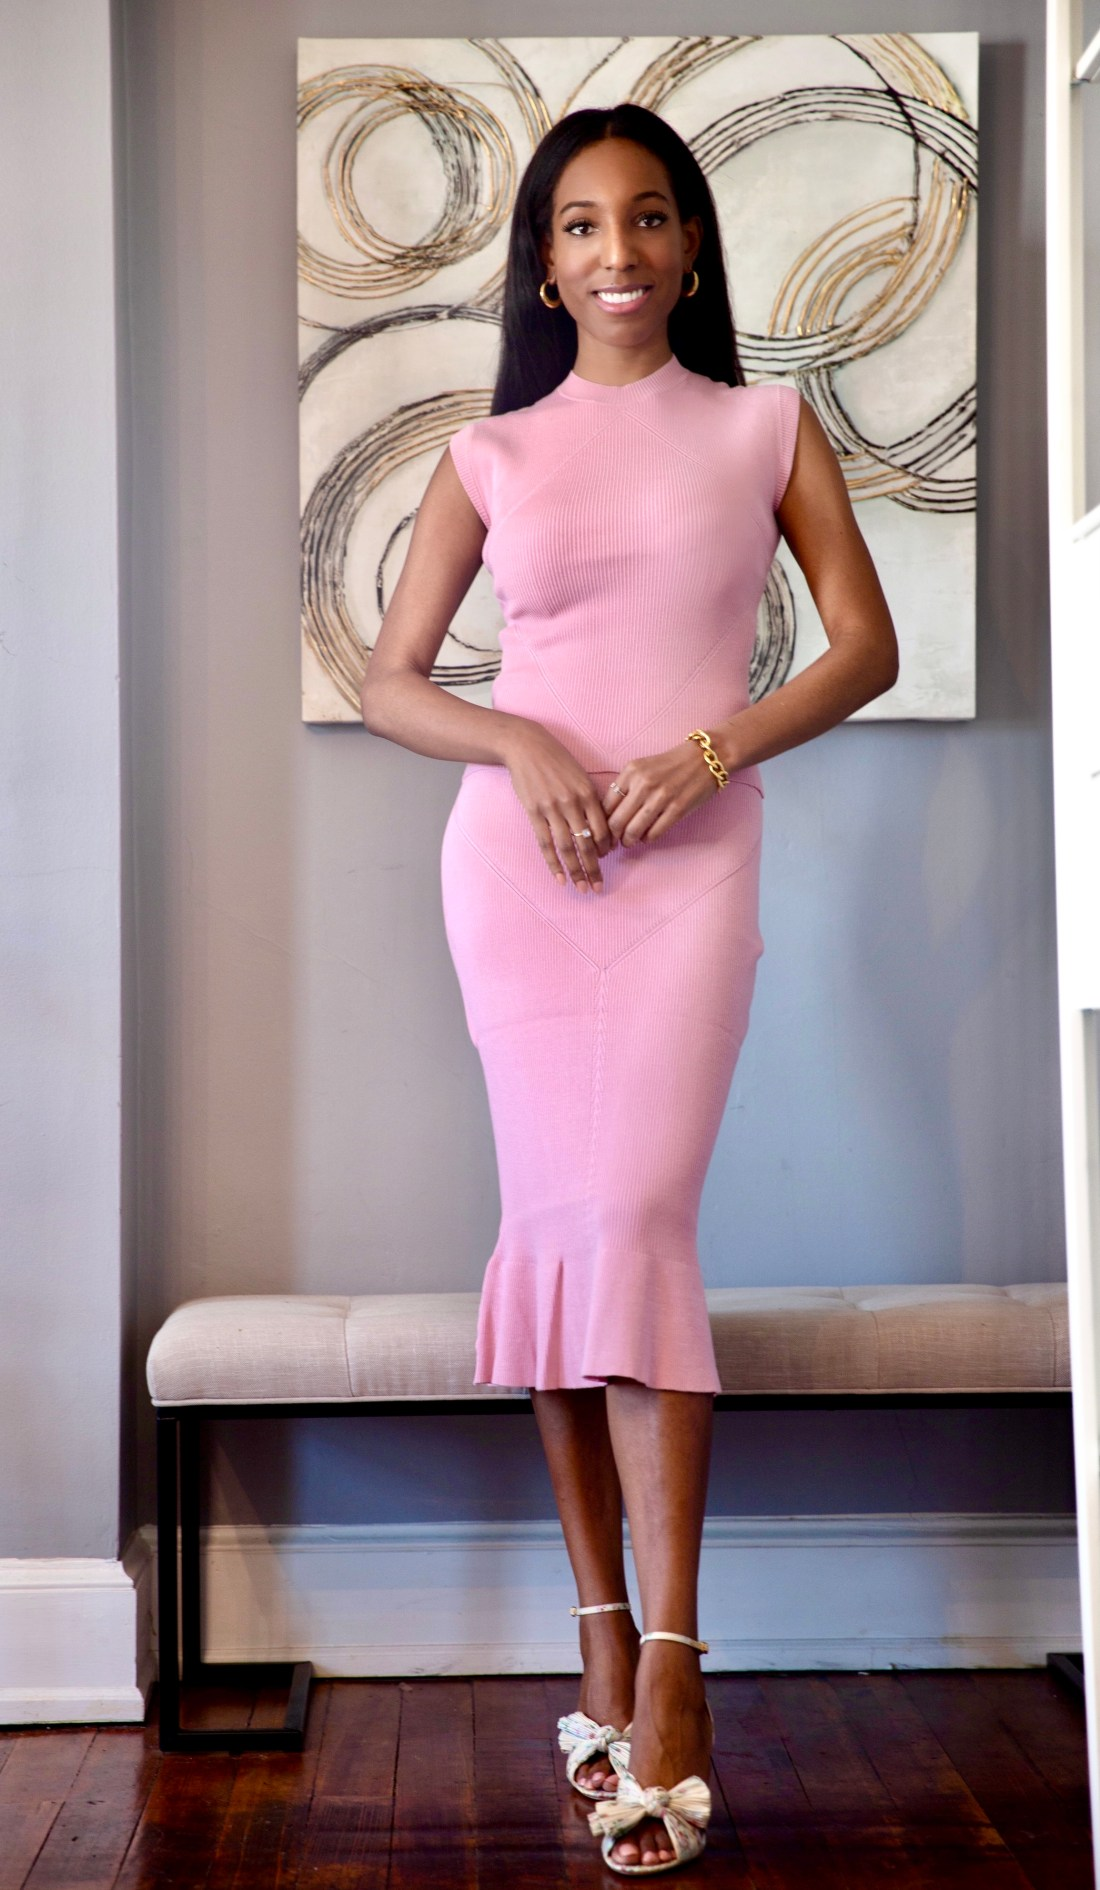 Lana Jackson wearing Undra Celeste New York Rib Cap Sleeve Knit Top in Power Pink and Rib Trumpet Knit Skirt in Power Pink